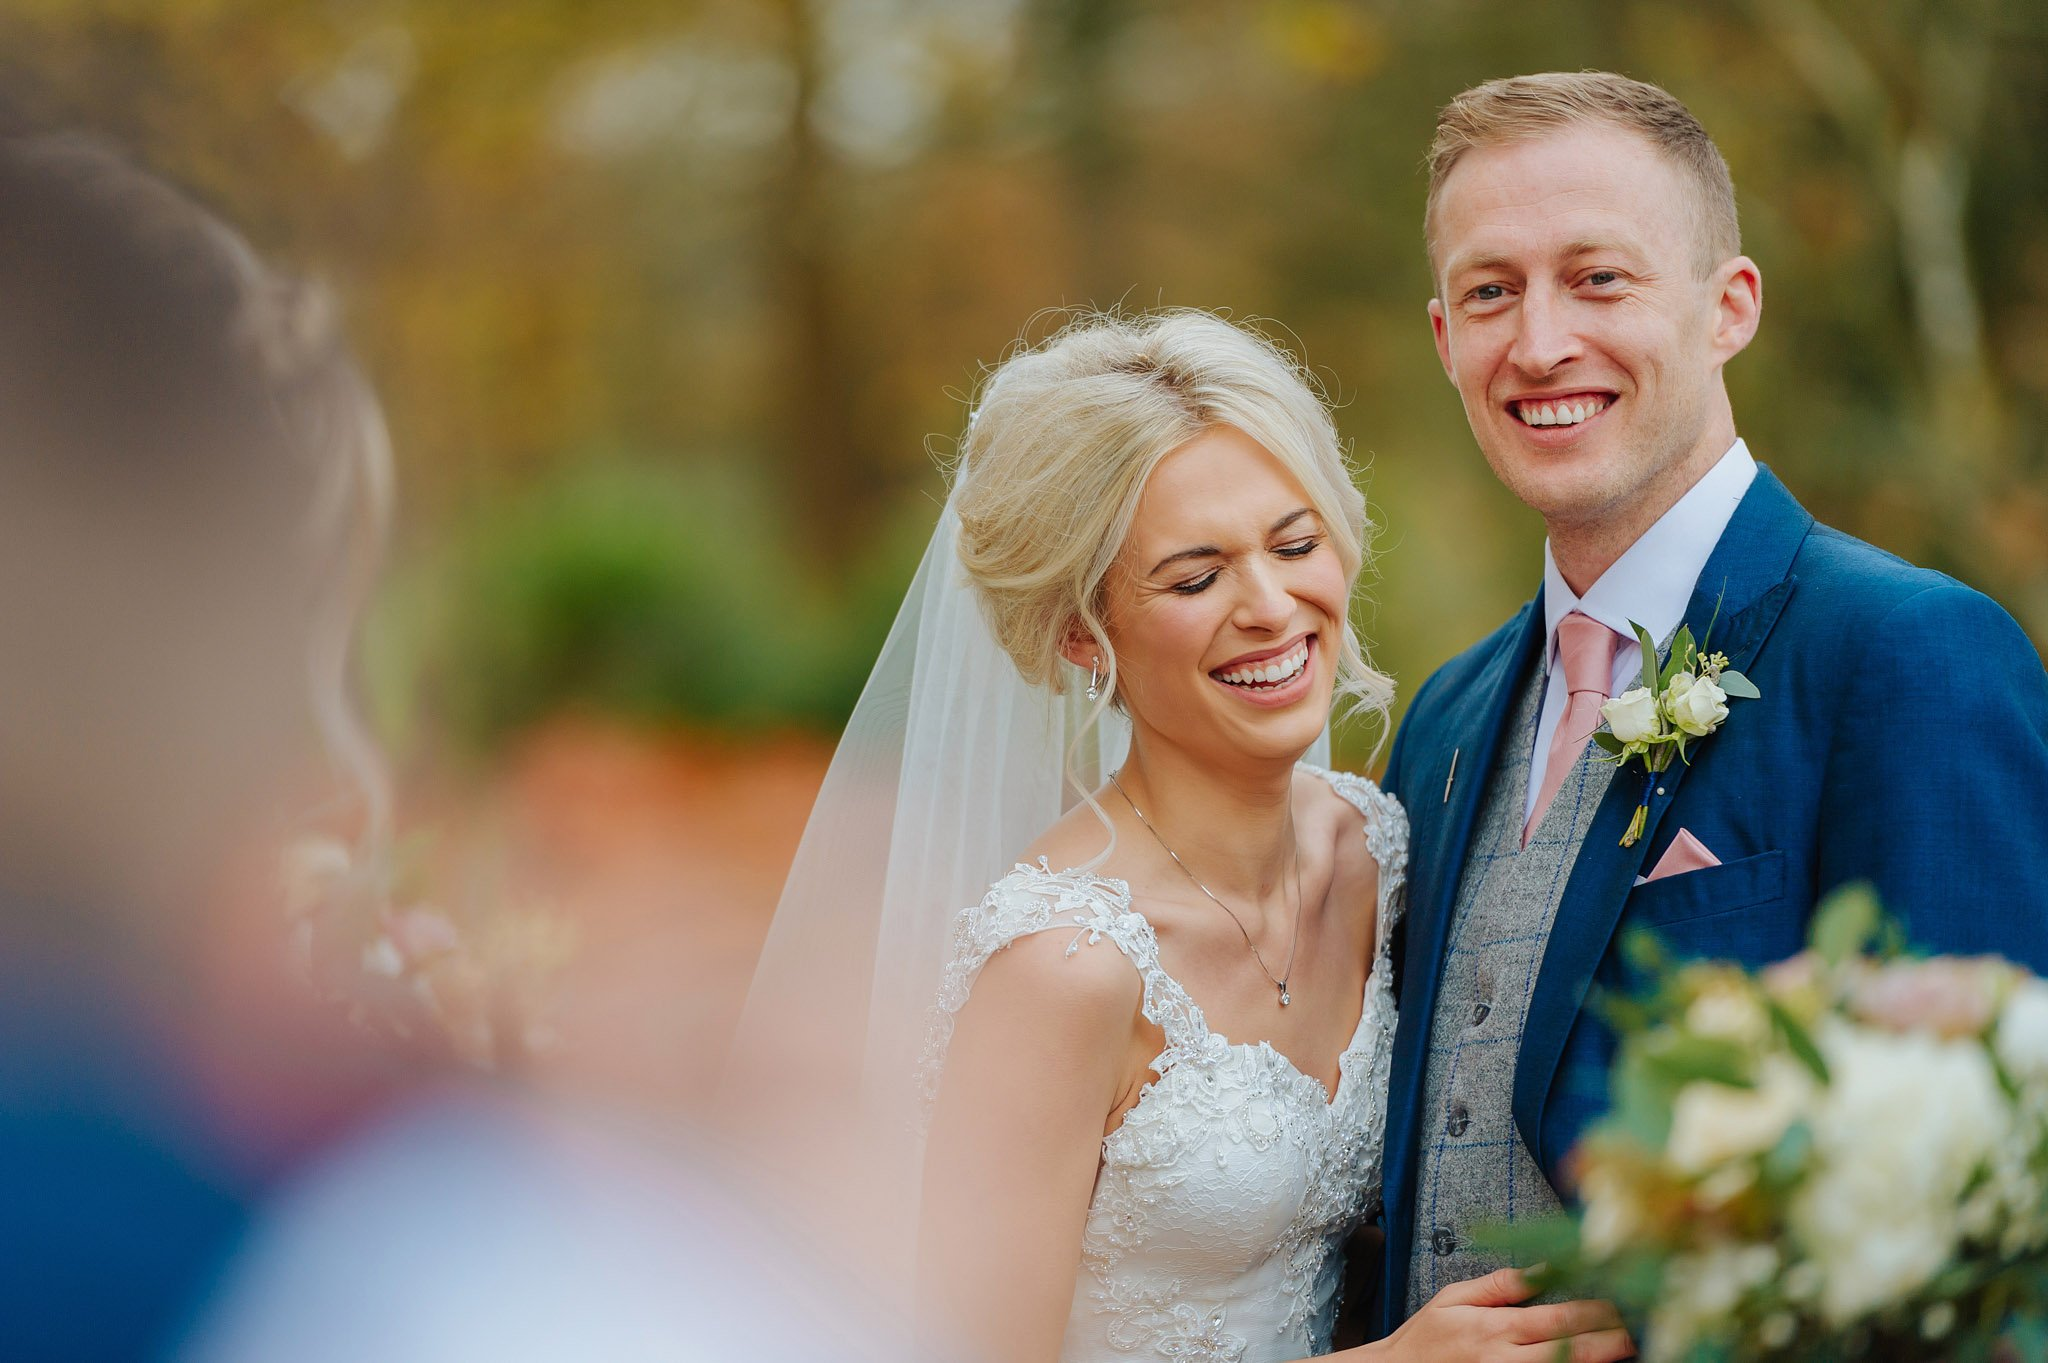 lemore manor wedding herefordshire 73 - Lemore Manor wedding, Herefordshire - West Midlands | Sadie + Ken